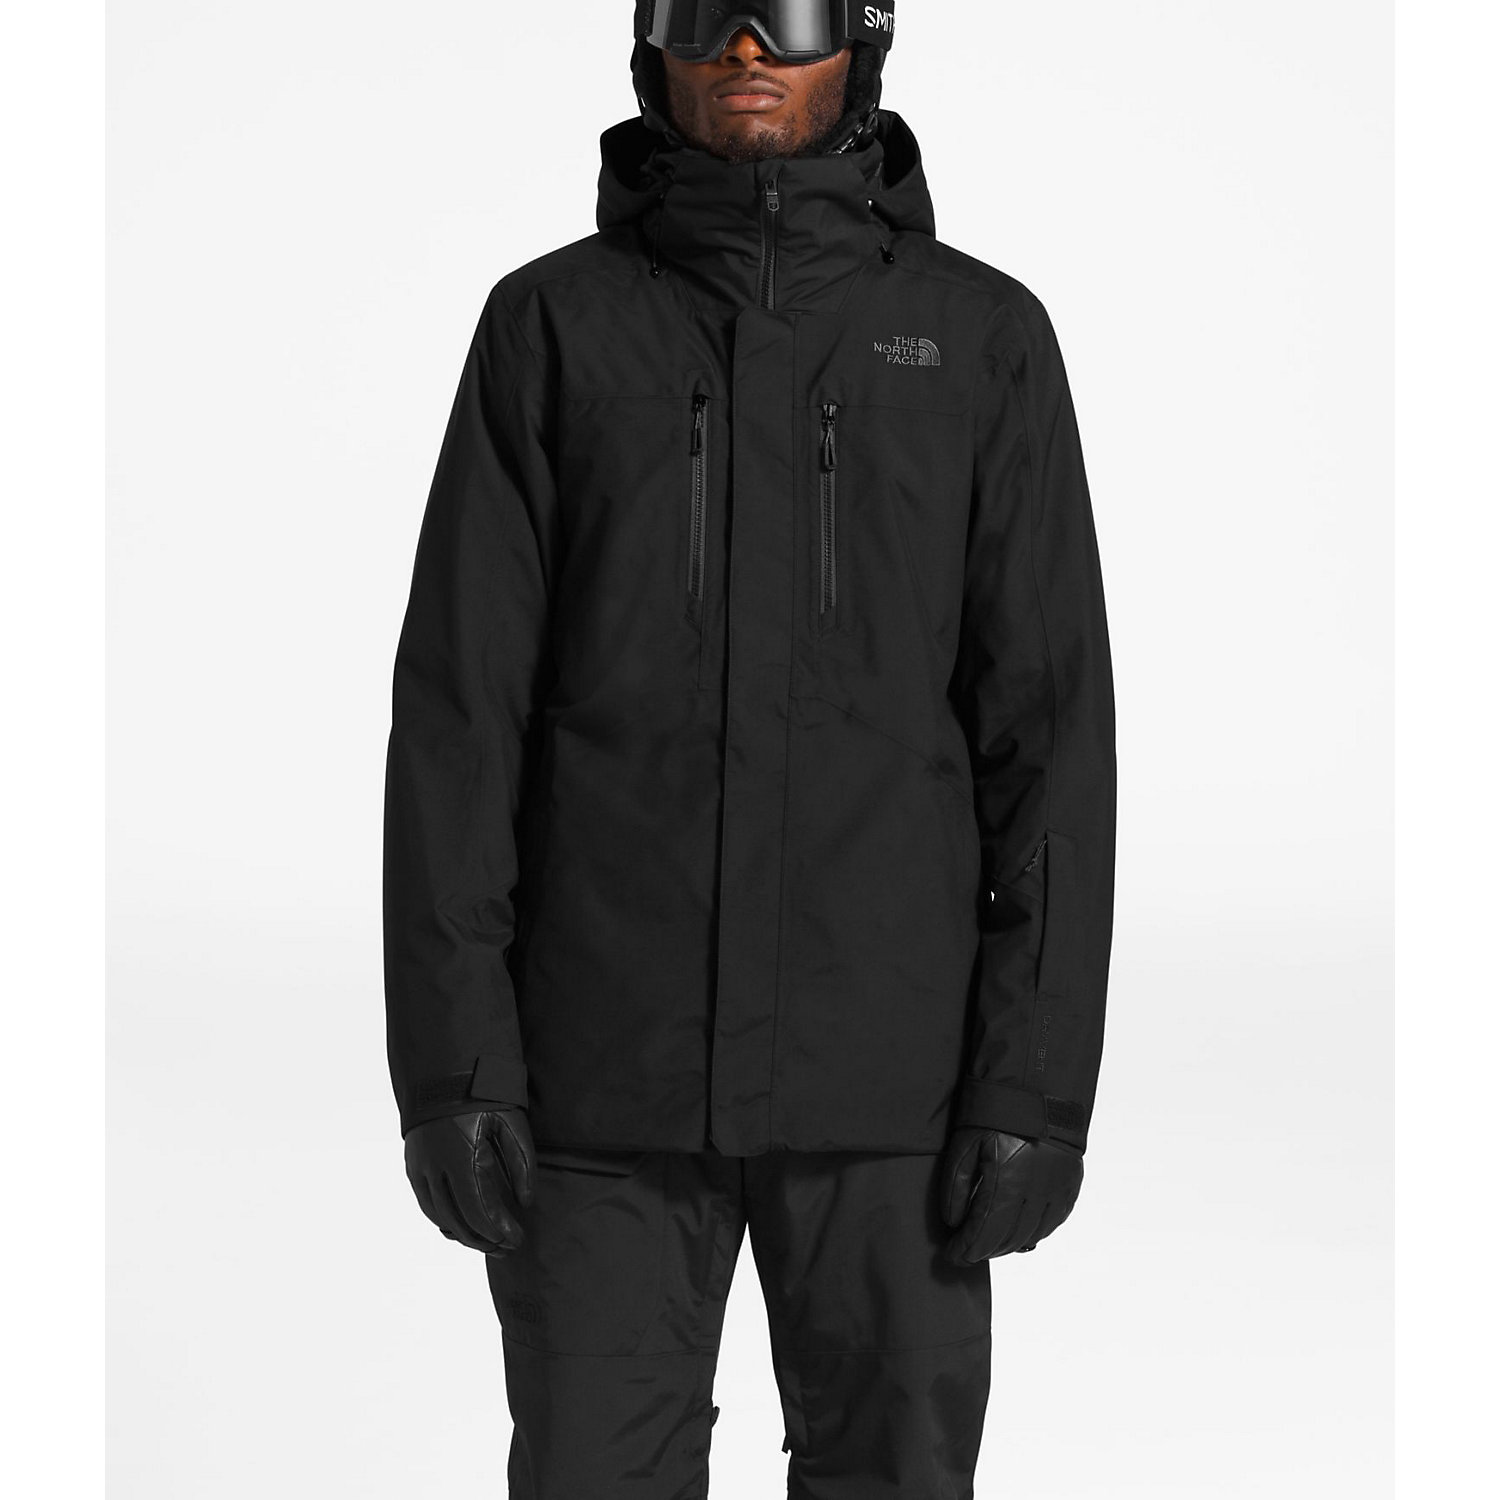 81d2fb60c The North Face Men's Clement Triclimate Tall Jacket